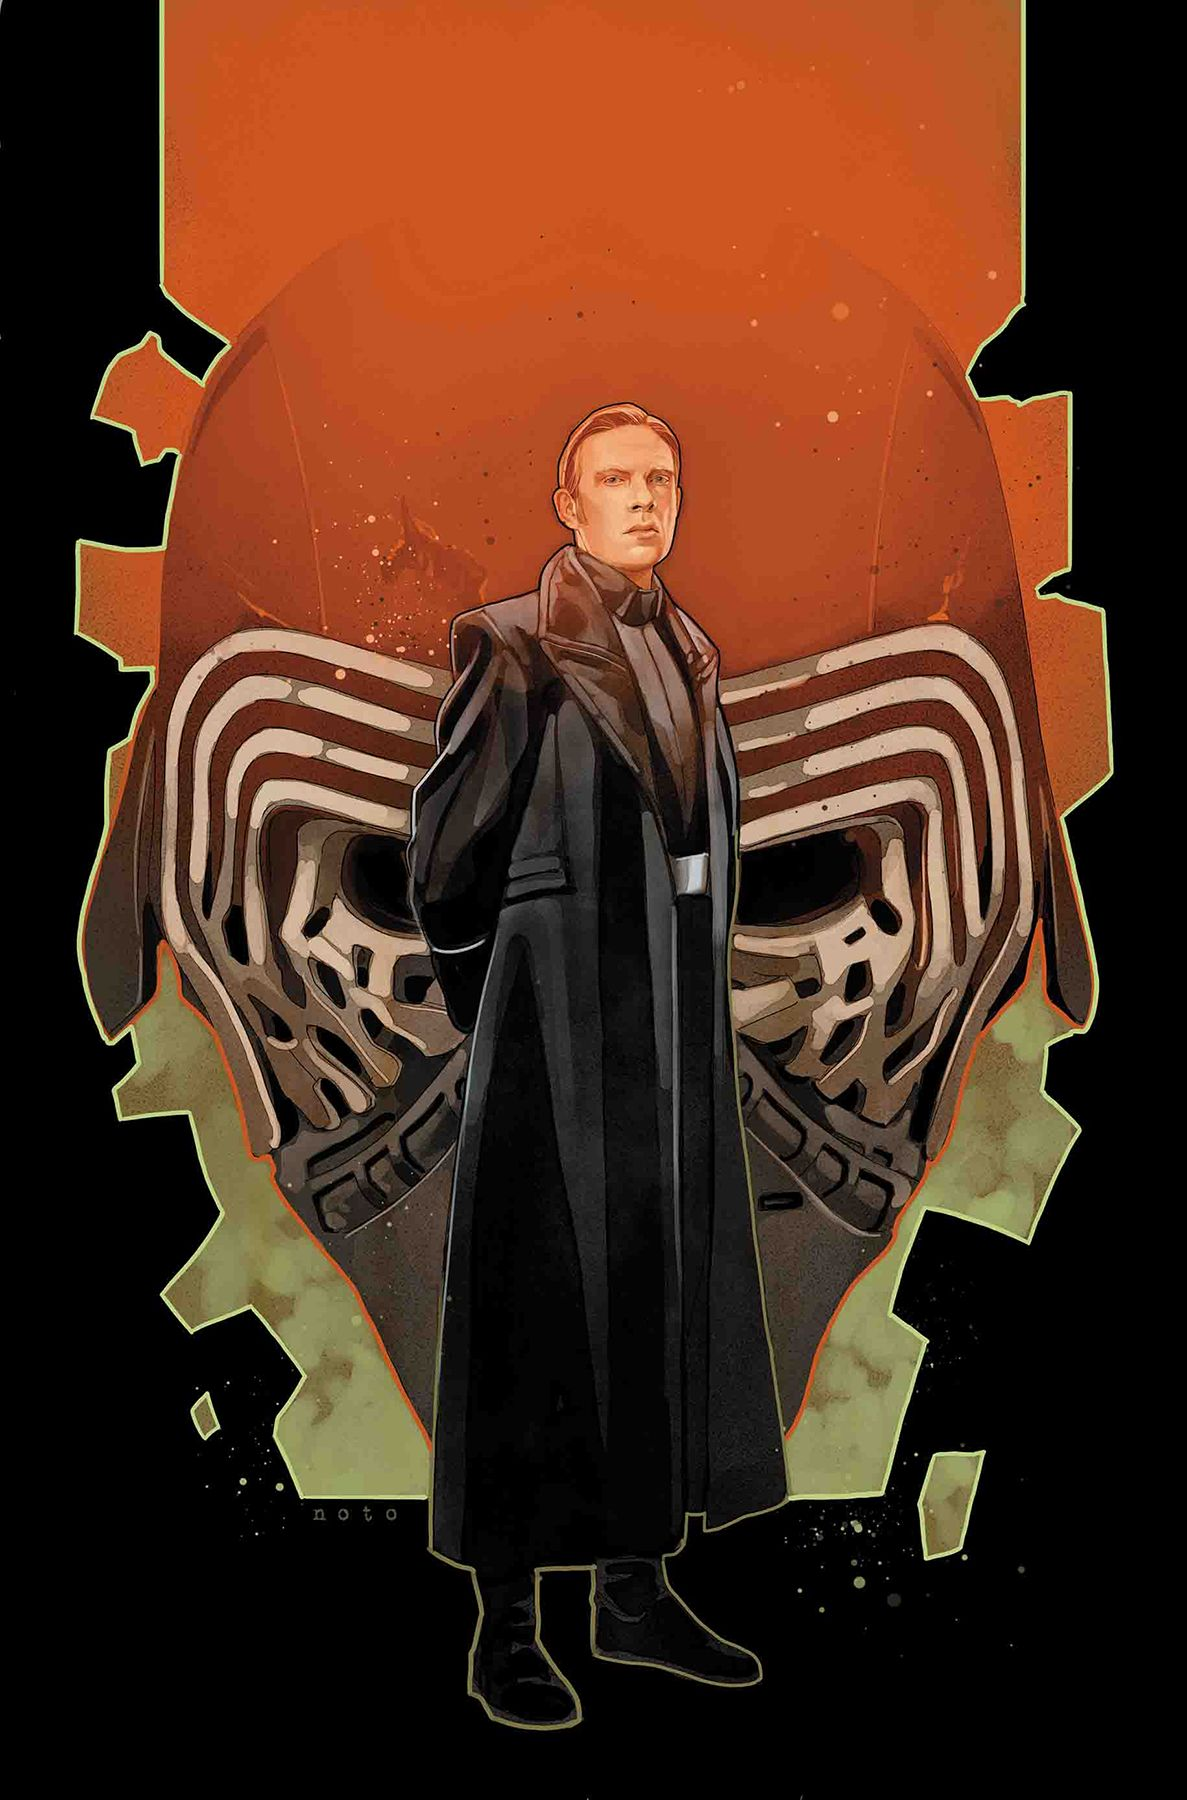 Star Wars Age Of Resistance General Hux